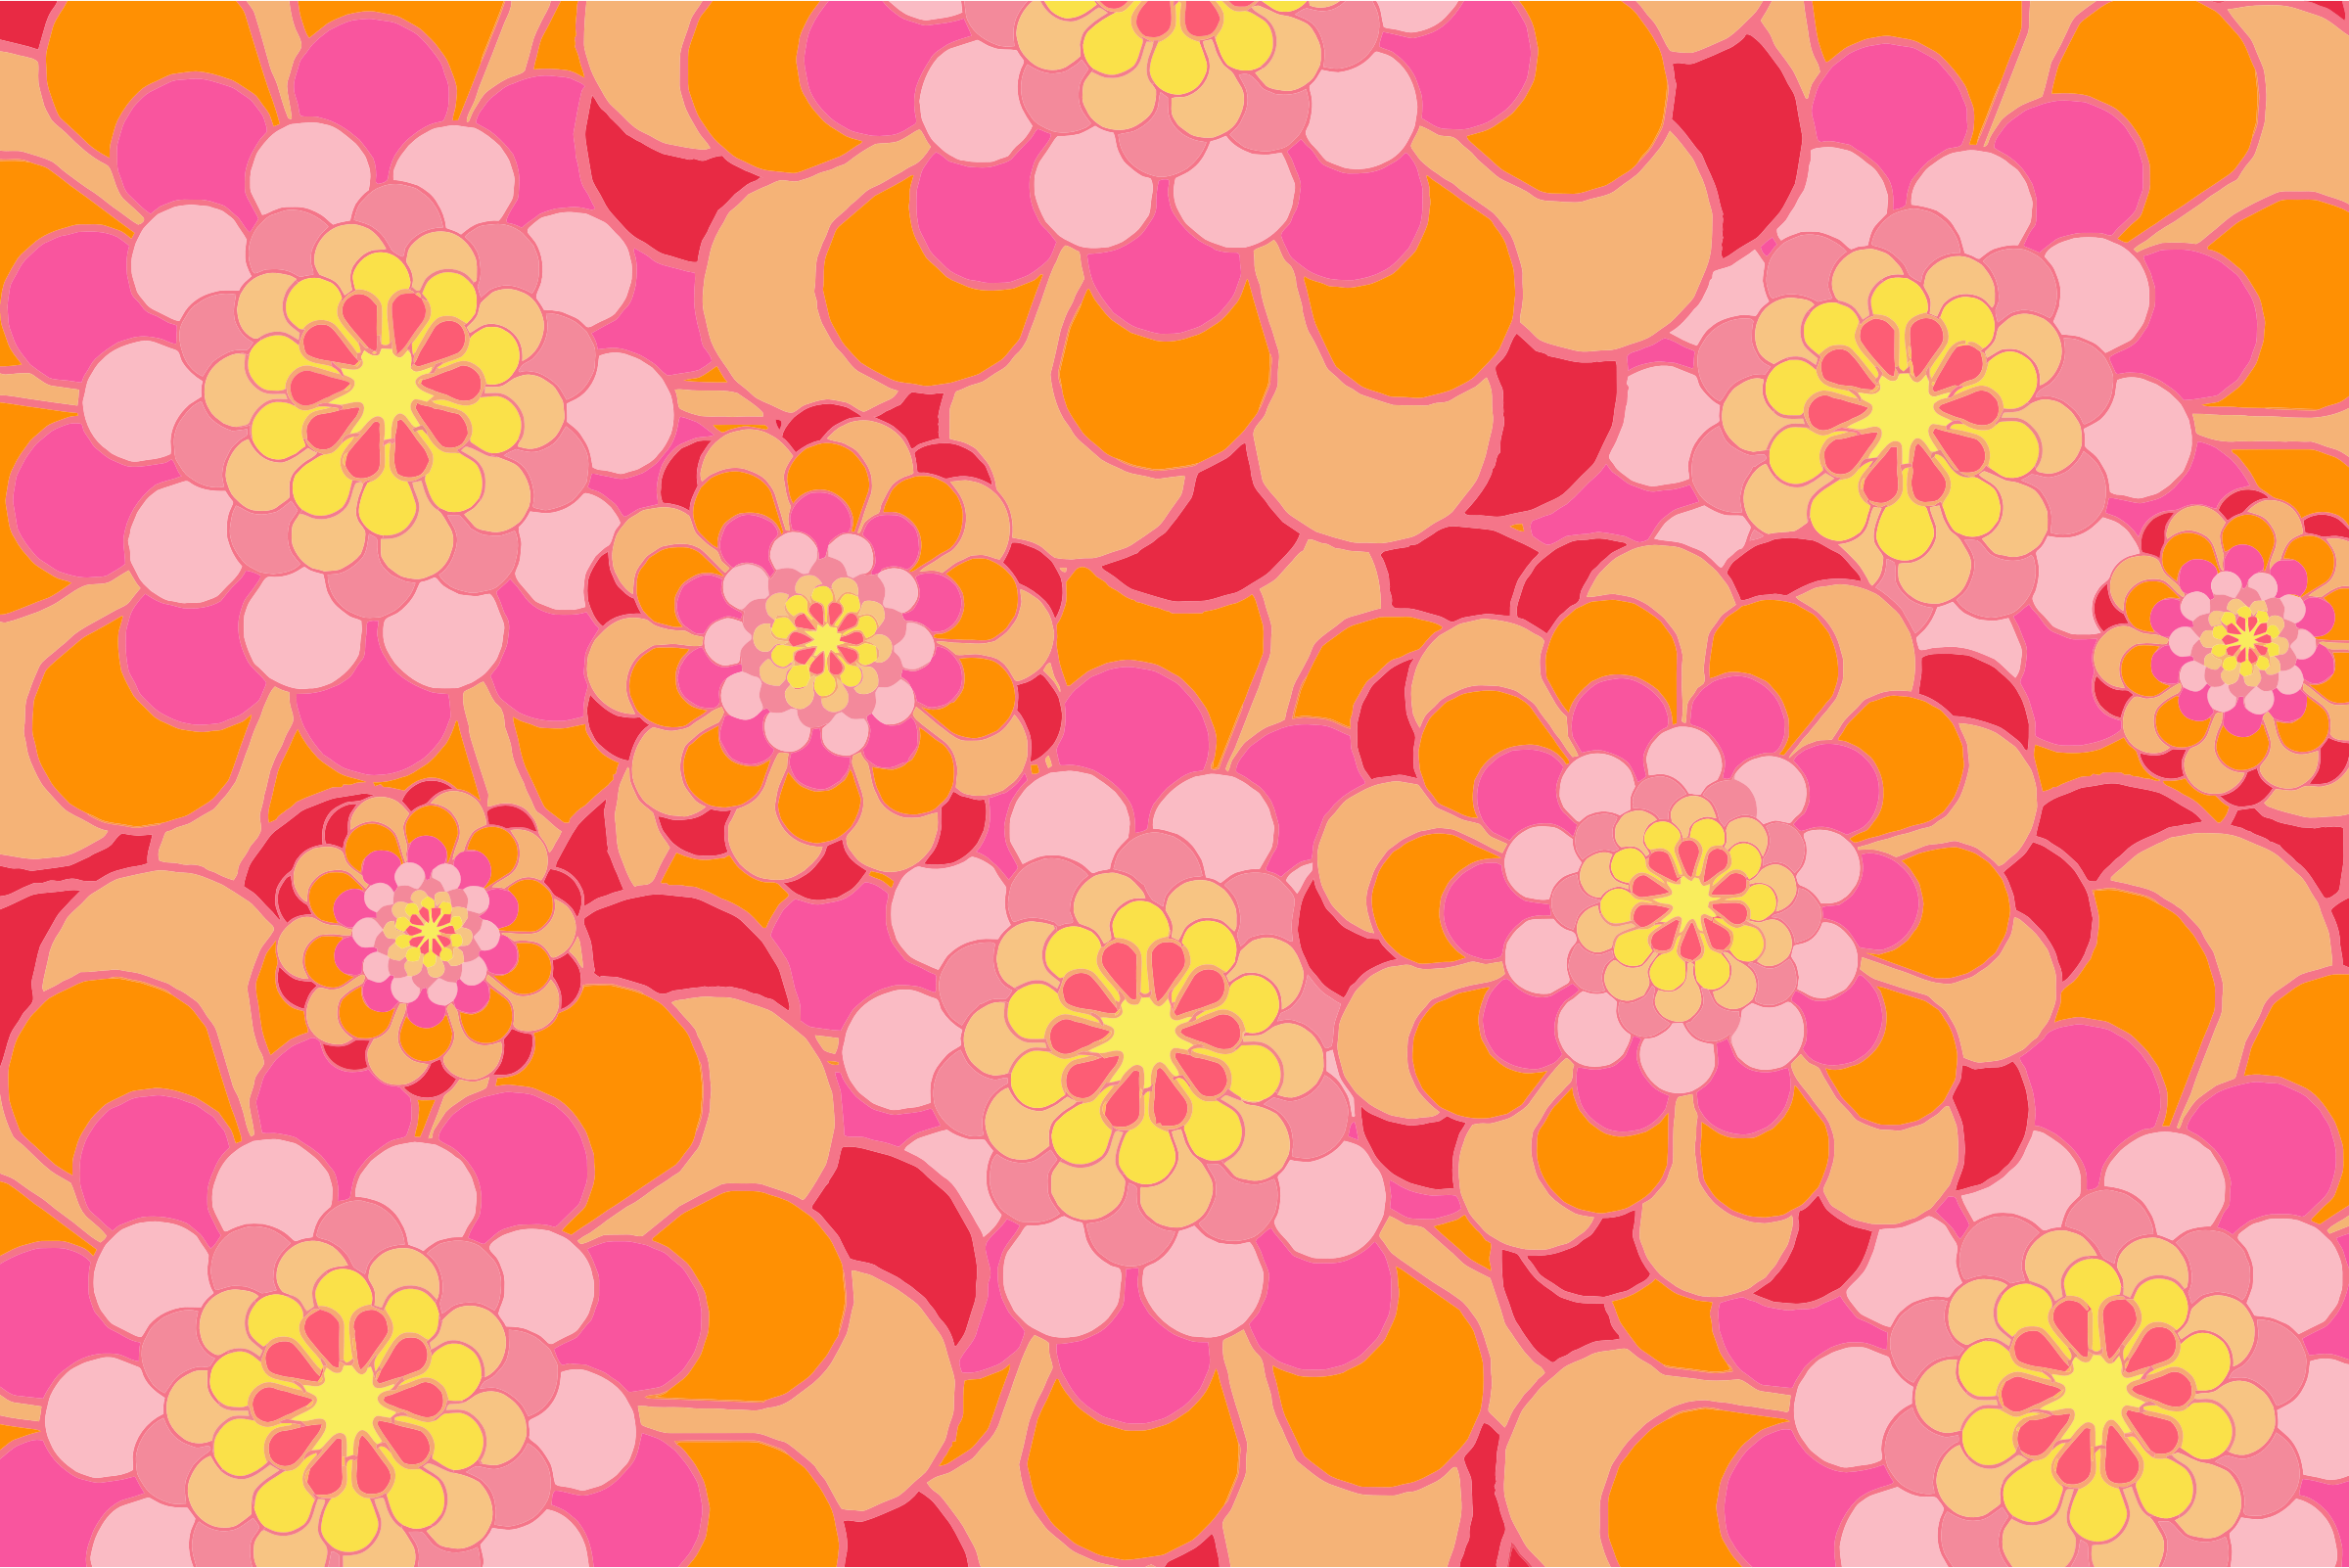 Melon Shades Floral Background by GDJ